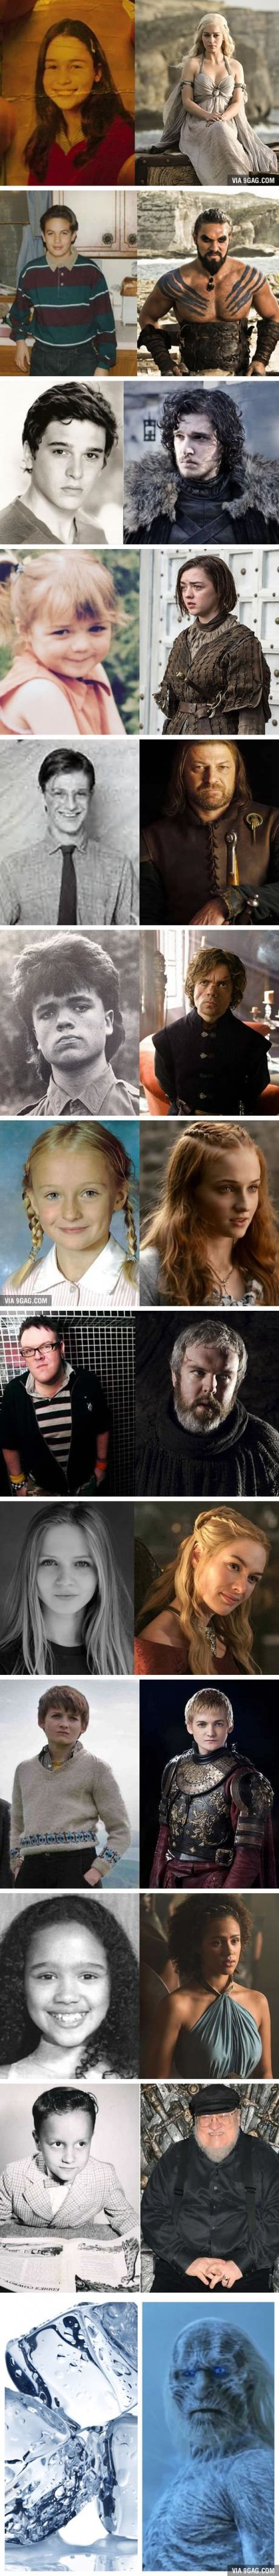 Childhood photos of the cast of 'Game of Thrones' | 9GAG